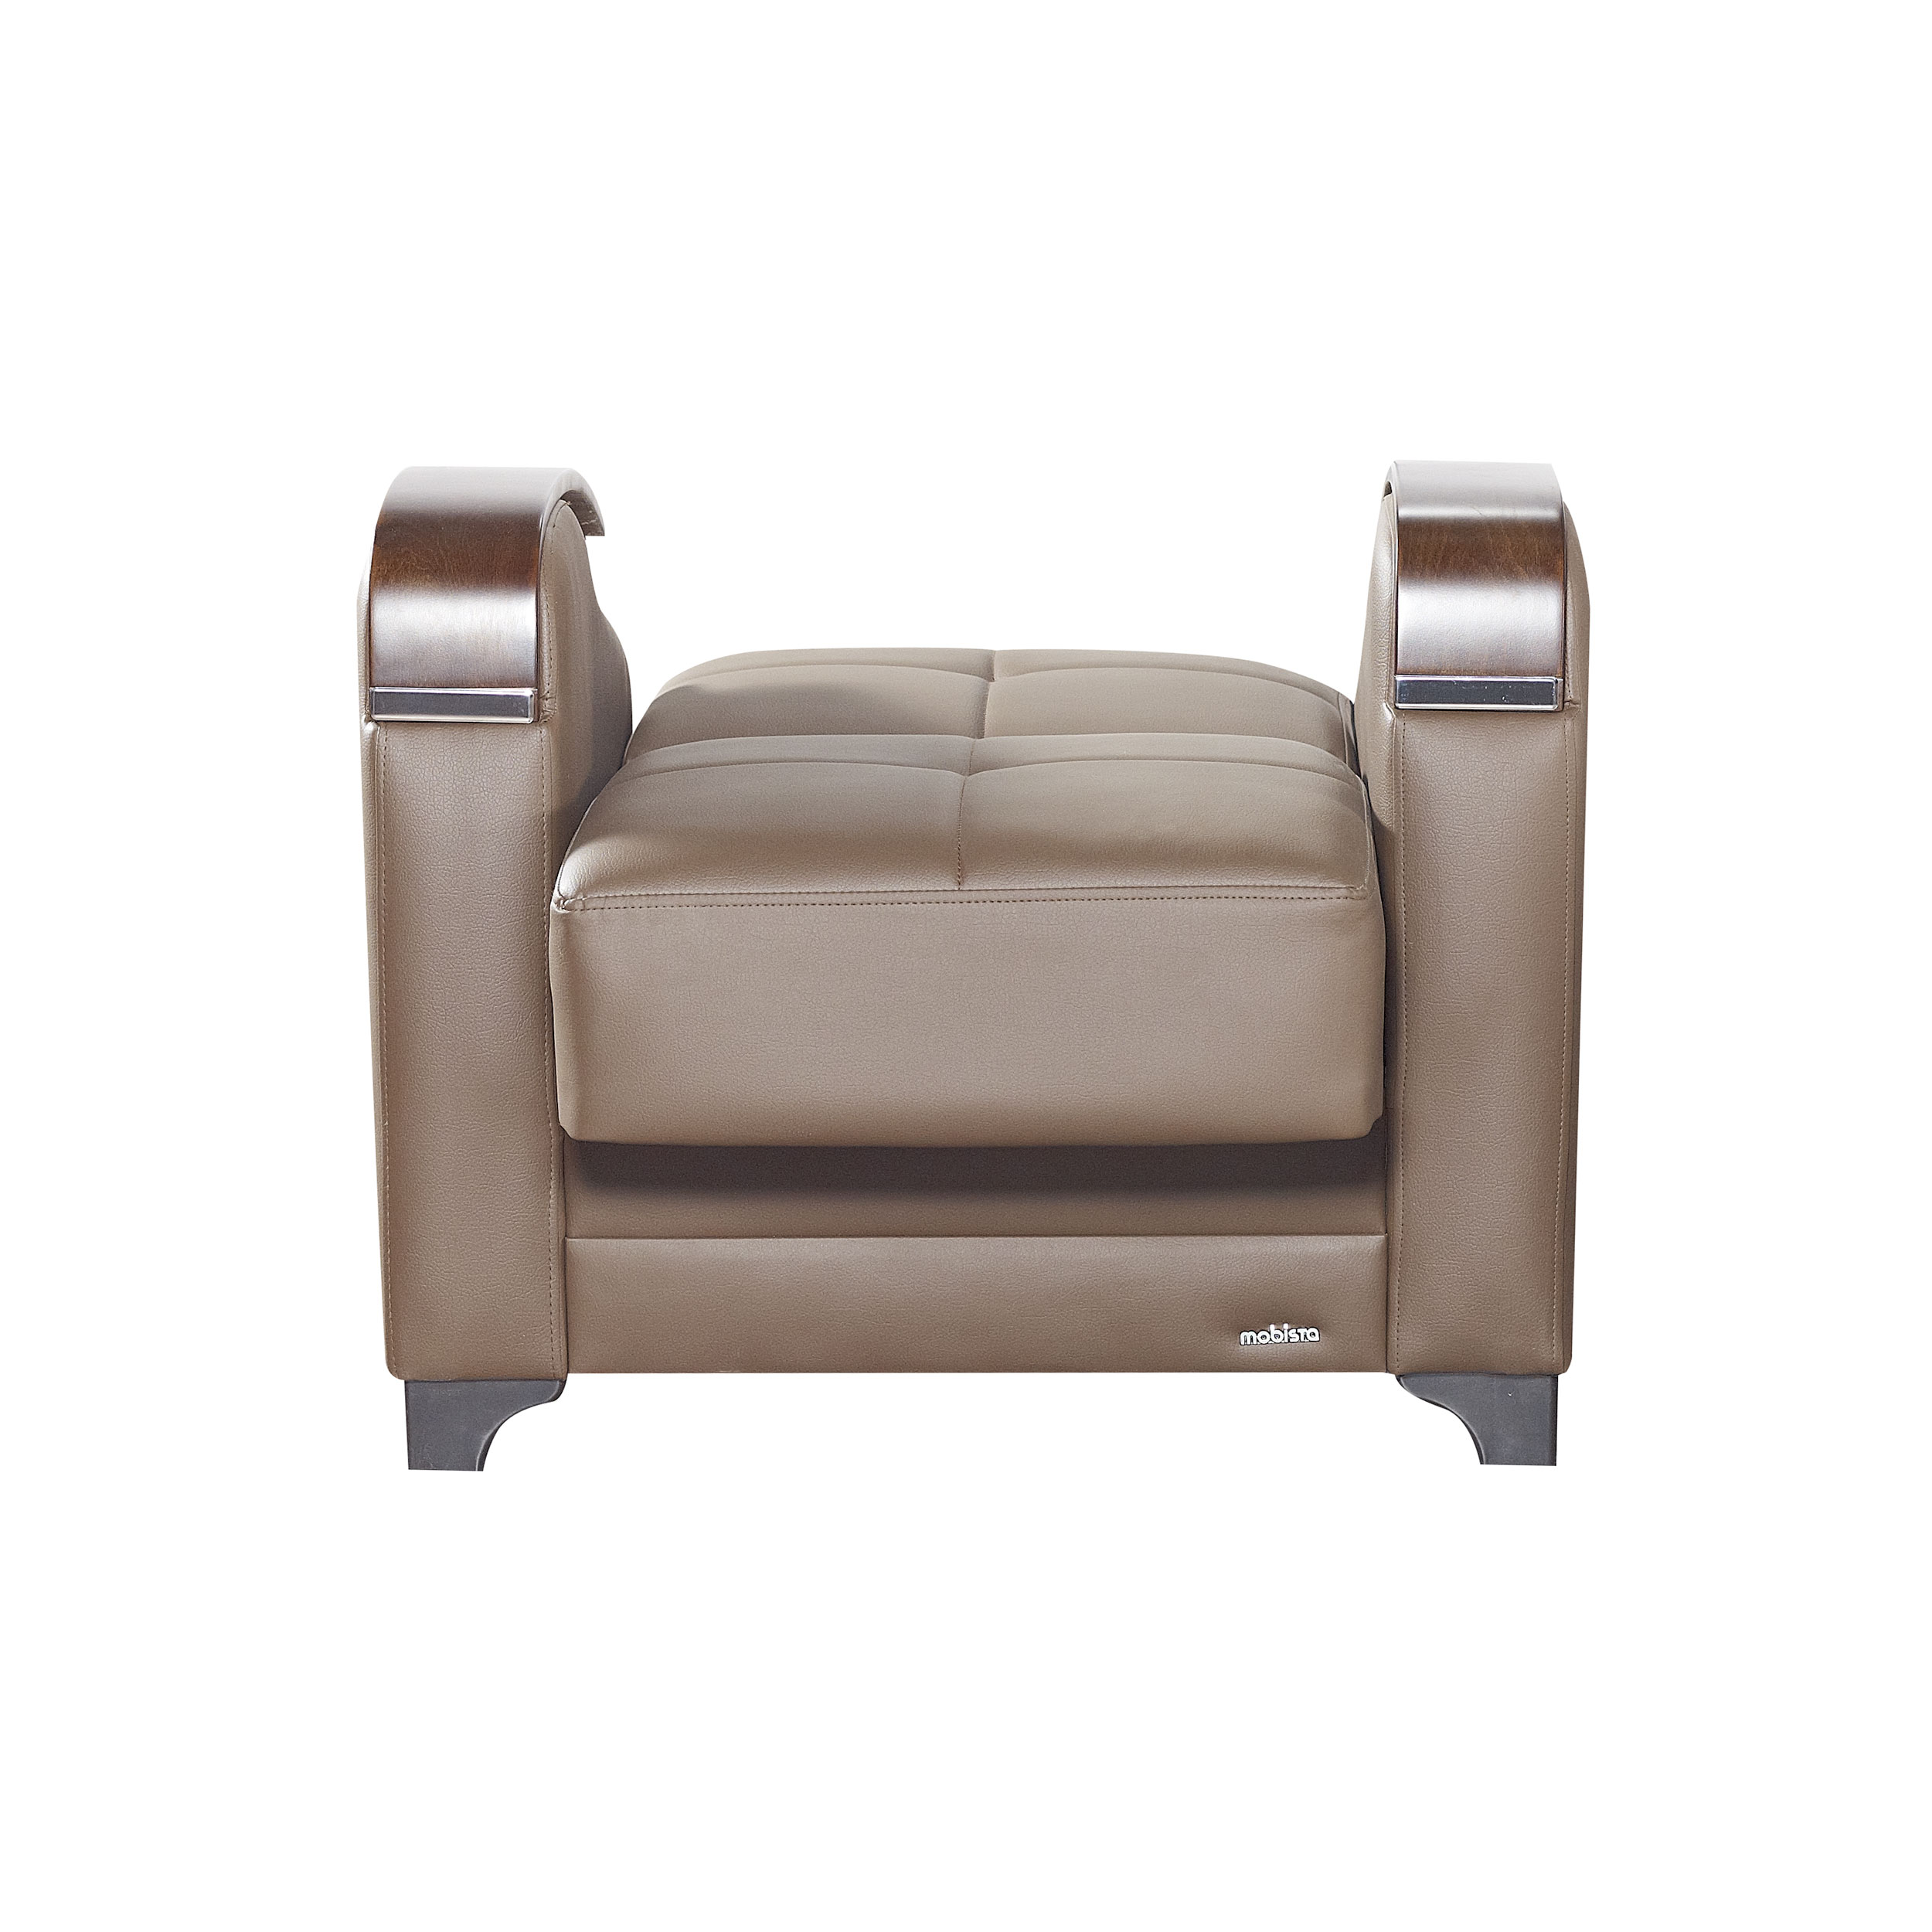 leatherette sofa durability feather filled etro prestige brown armchair by mobista